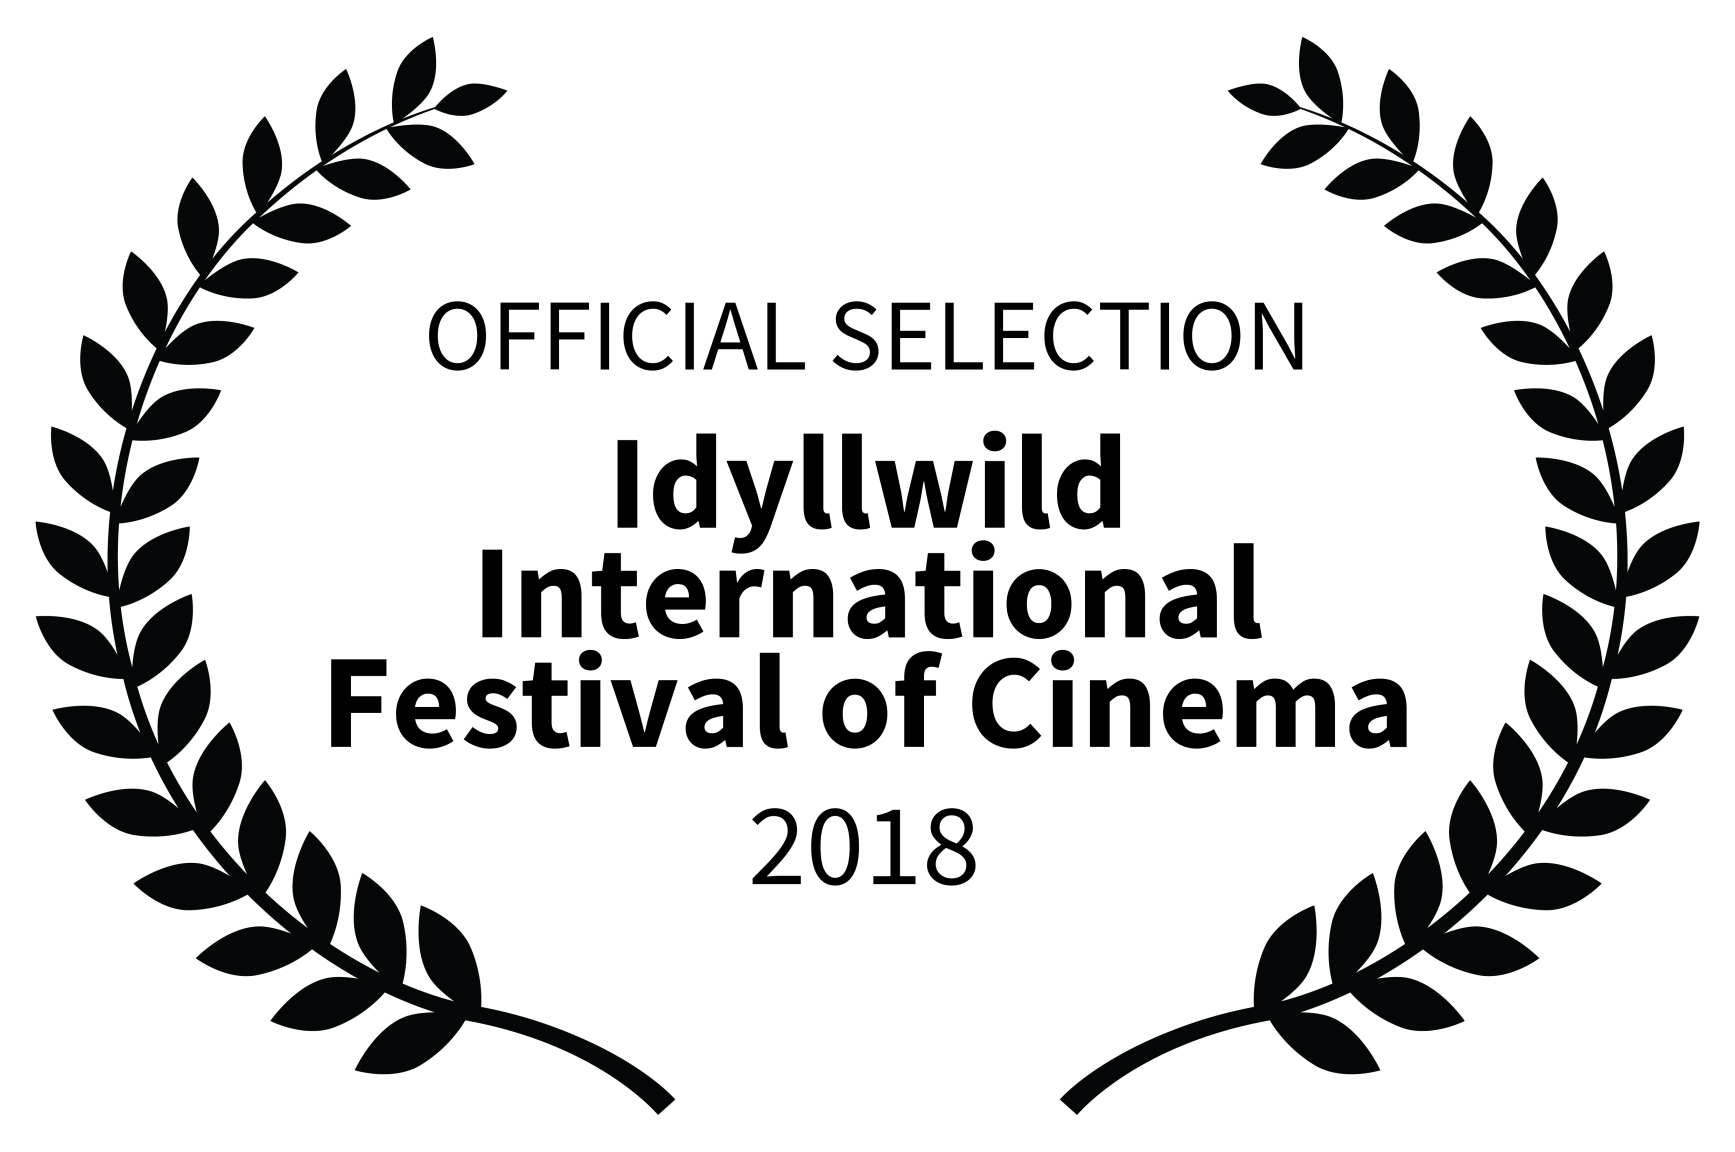 001_O_OFFICIAL-SELECTION---Idyllwild-International-Festival-of-Cinema---2018 copy.jpg